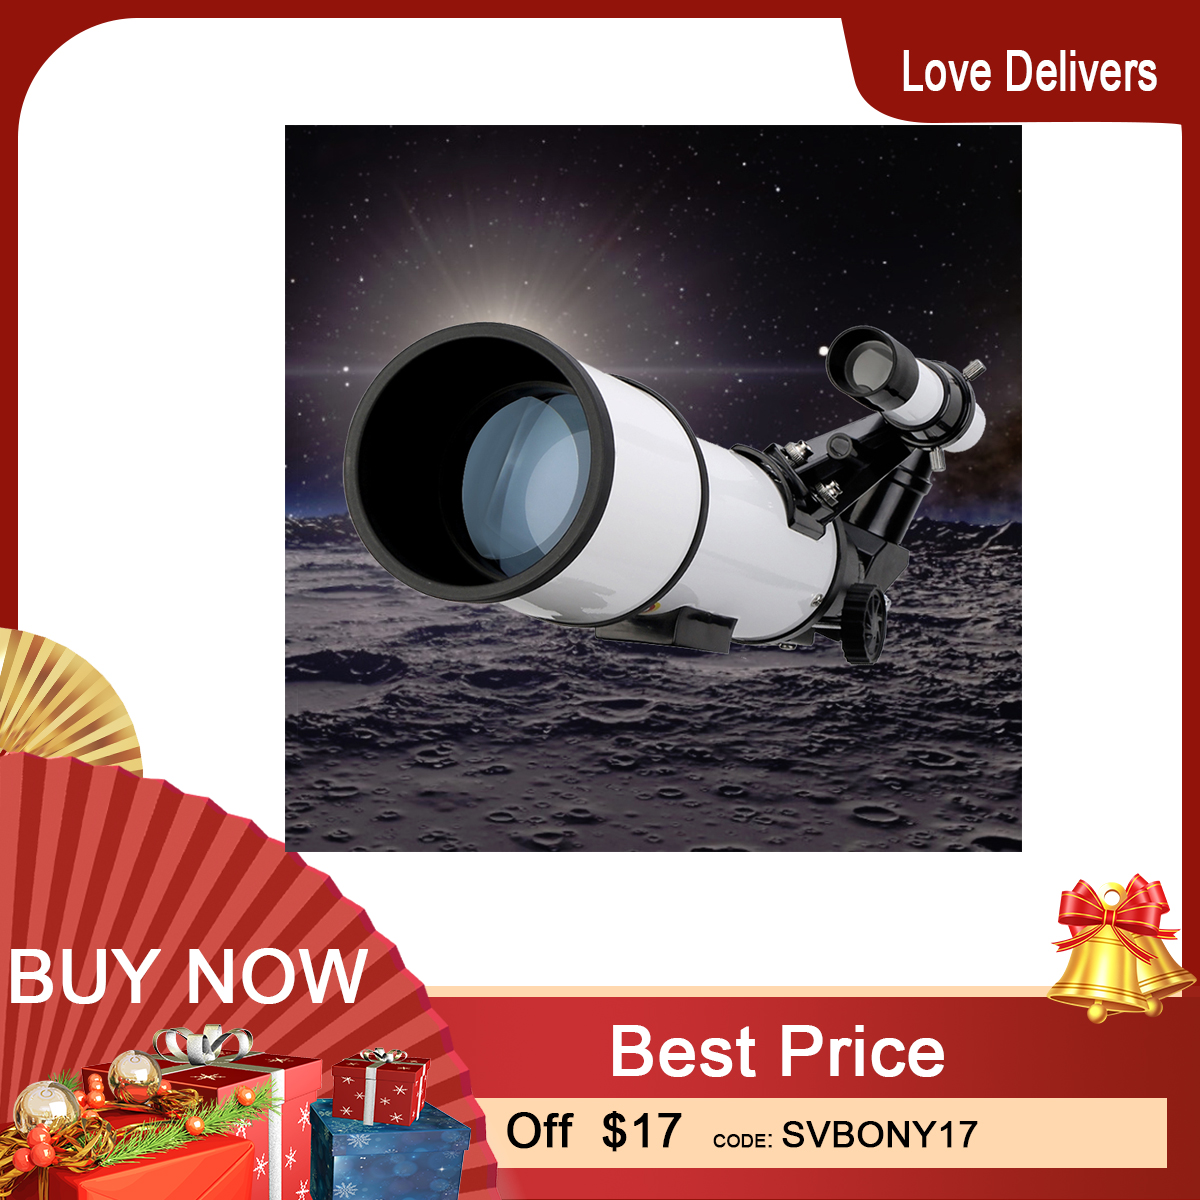 SVBONY SV501 70 mm Astronomical Telescope  Monocular Moon Bird Watching Kids Adults Astronomy Beginners      No tripod in the Package